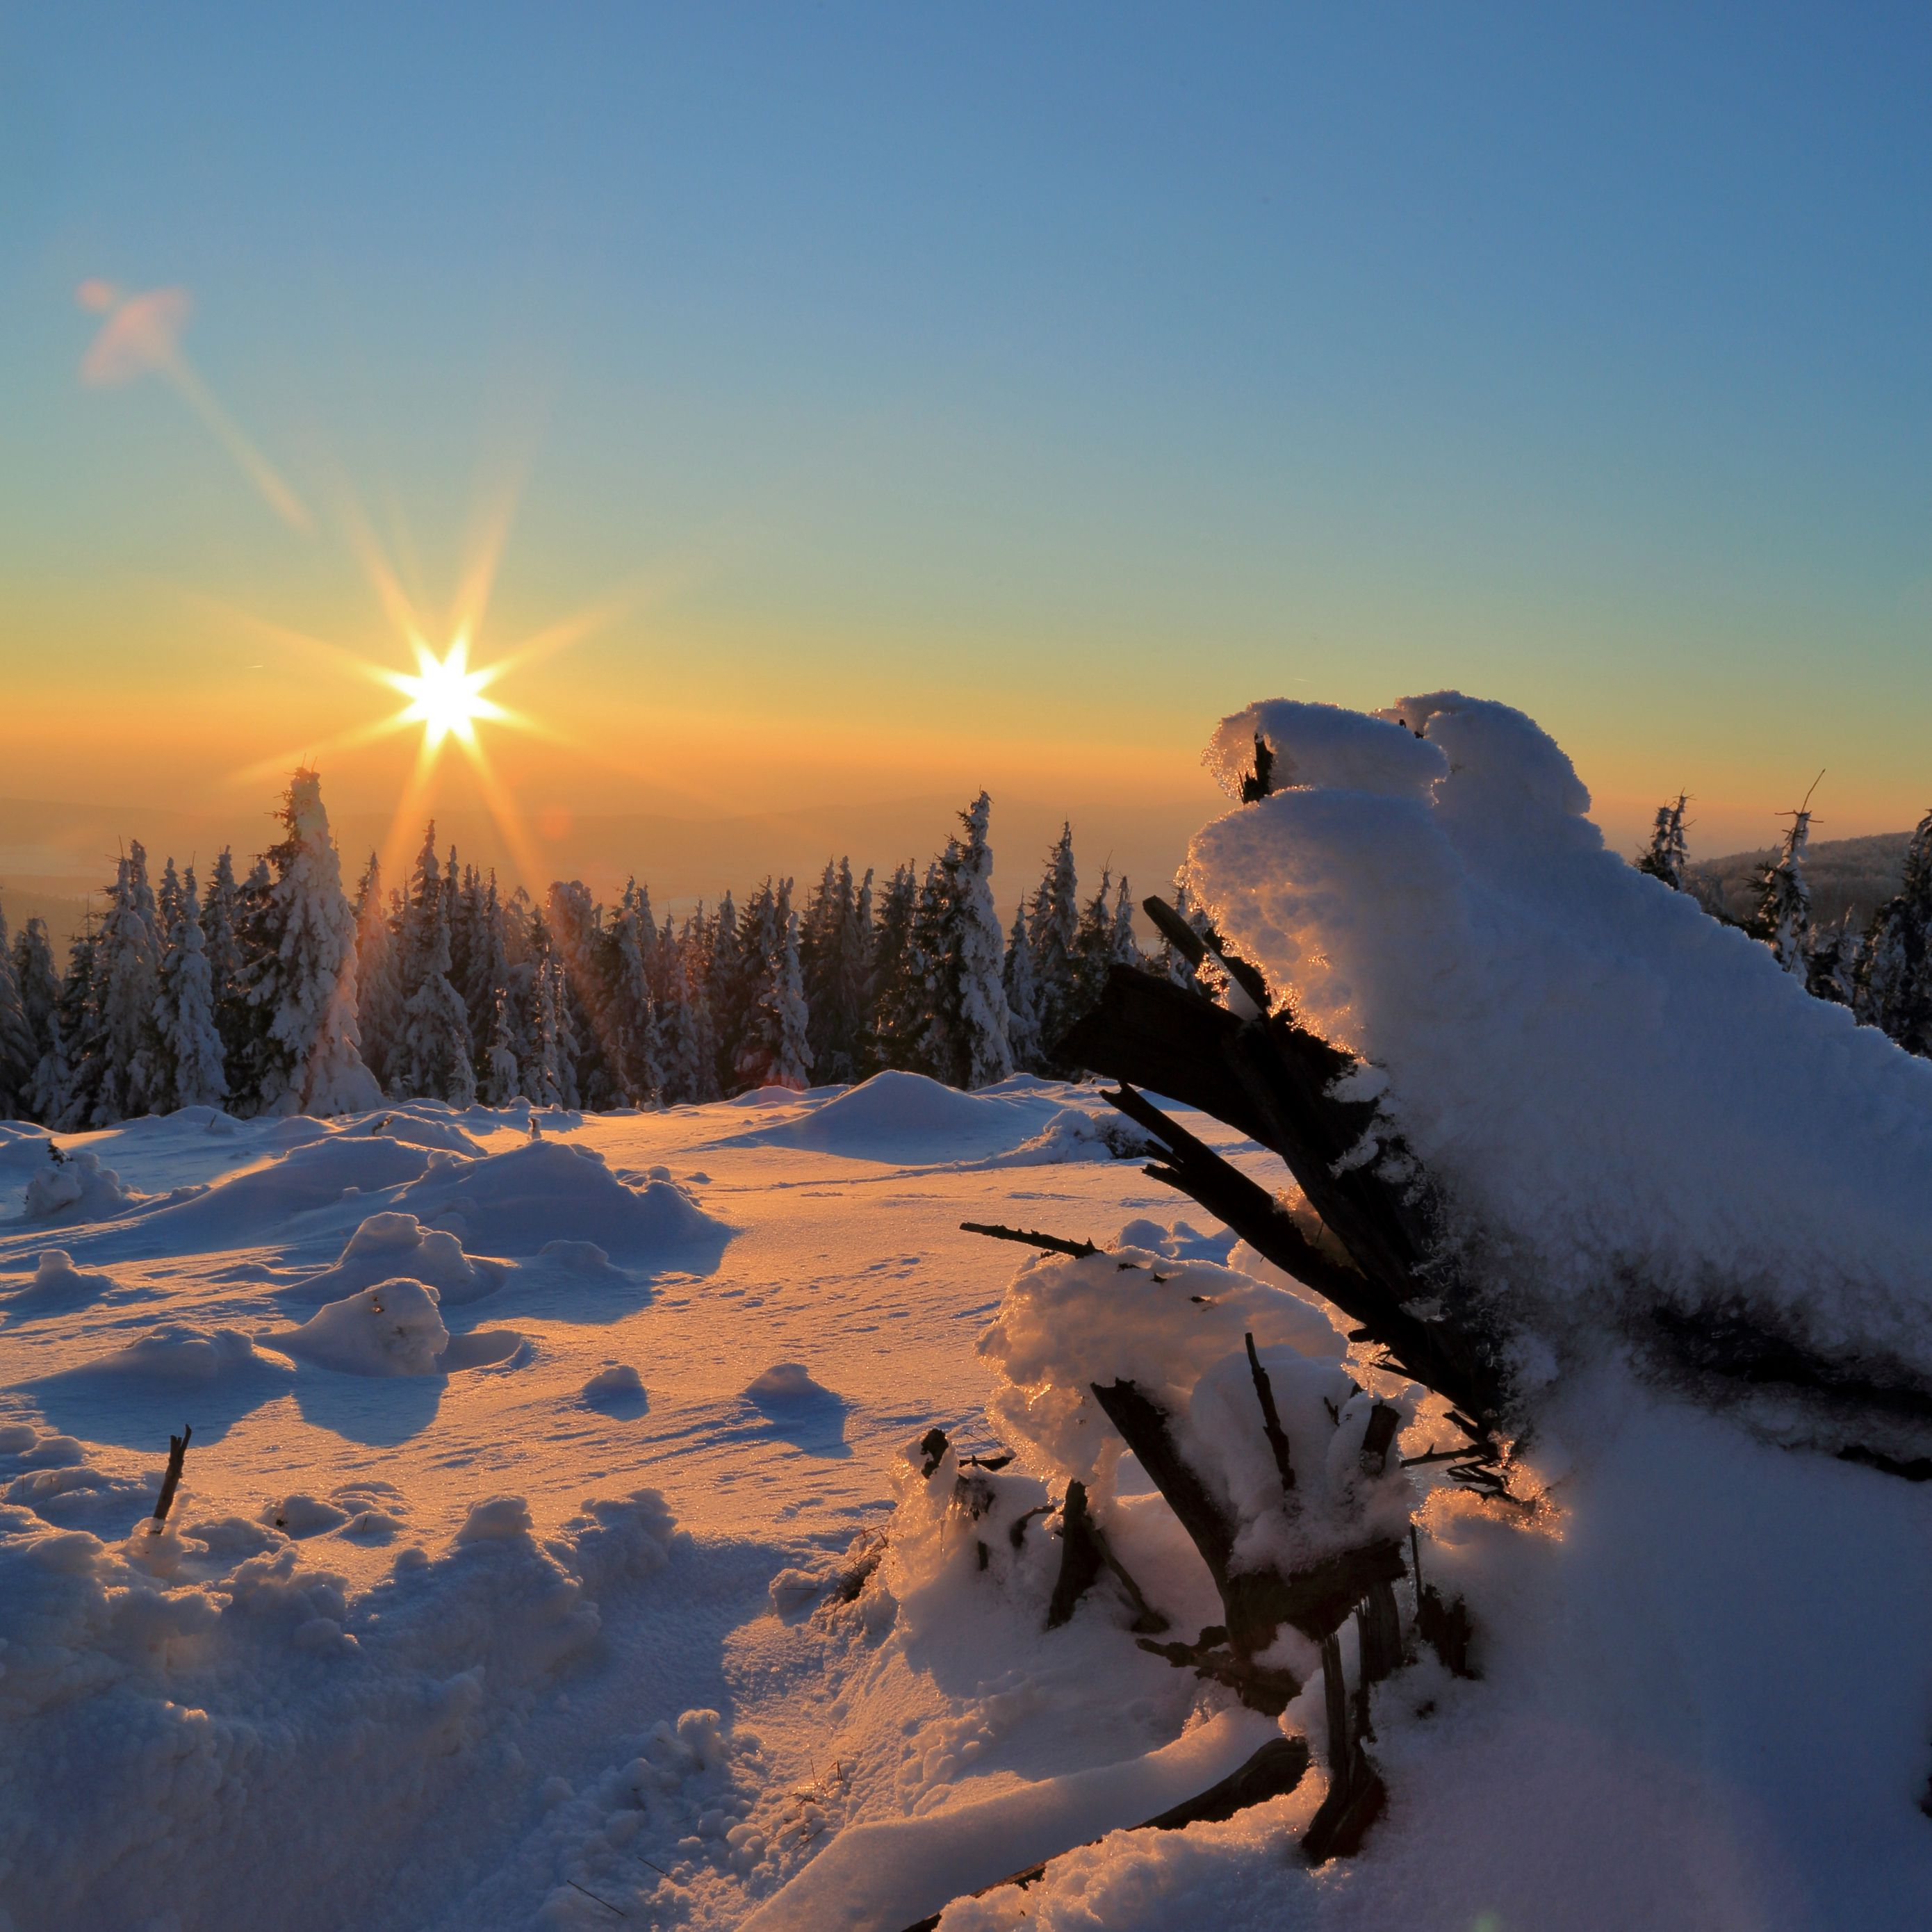 2780x2780 Wallpaper winter, snow, sunset, drifts, trees